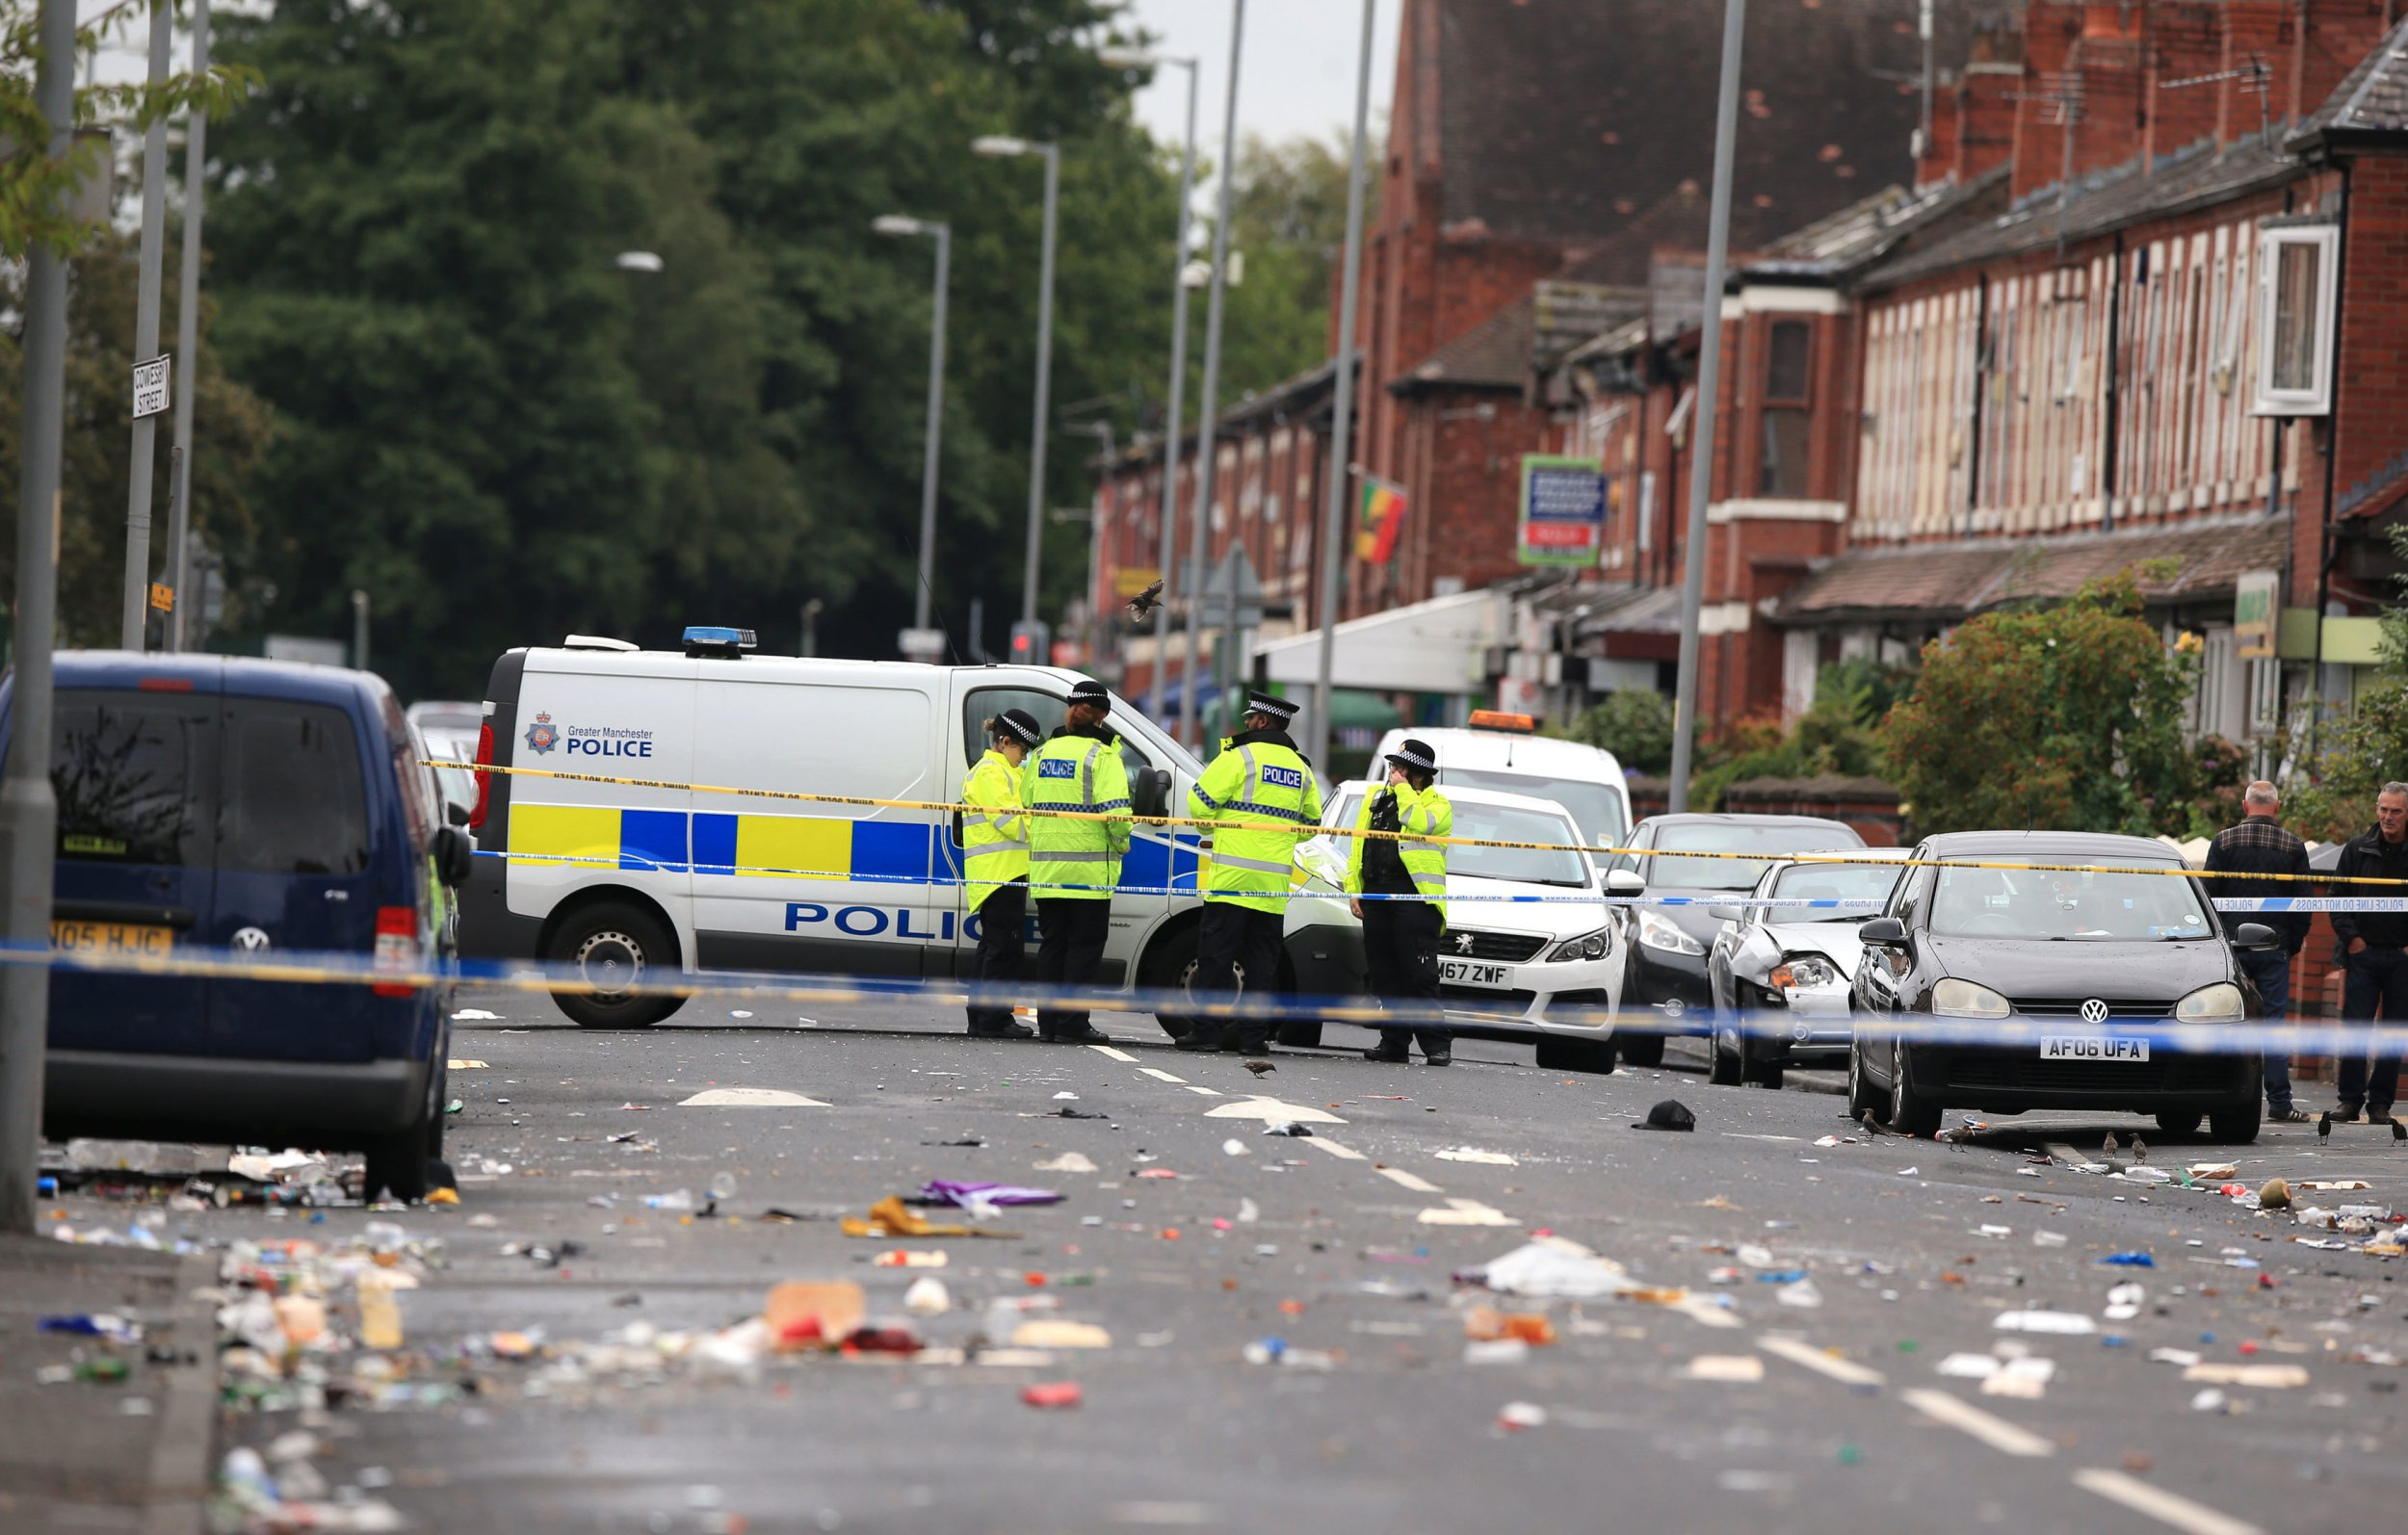 Police officers at the scene in Claremont Road, Moss Side, Manchester, where ten people, including two children were taken to hospital after reports of gunshots at a street party. PRESS ASSOCIATION Photo. Picture date: Sunday August 12, 2018. Armed officers were called at 2.30am on Sunday following the celebrations of the Caribbean Carnival. One man was in a serious but stable condition with leg injuries and nine others, were taken to hospital with pellet-type wounds. See PA story POLICE Shooting. Photo credit should read: Peter Byrne/PA Wire